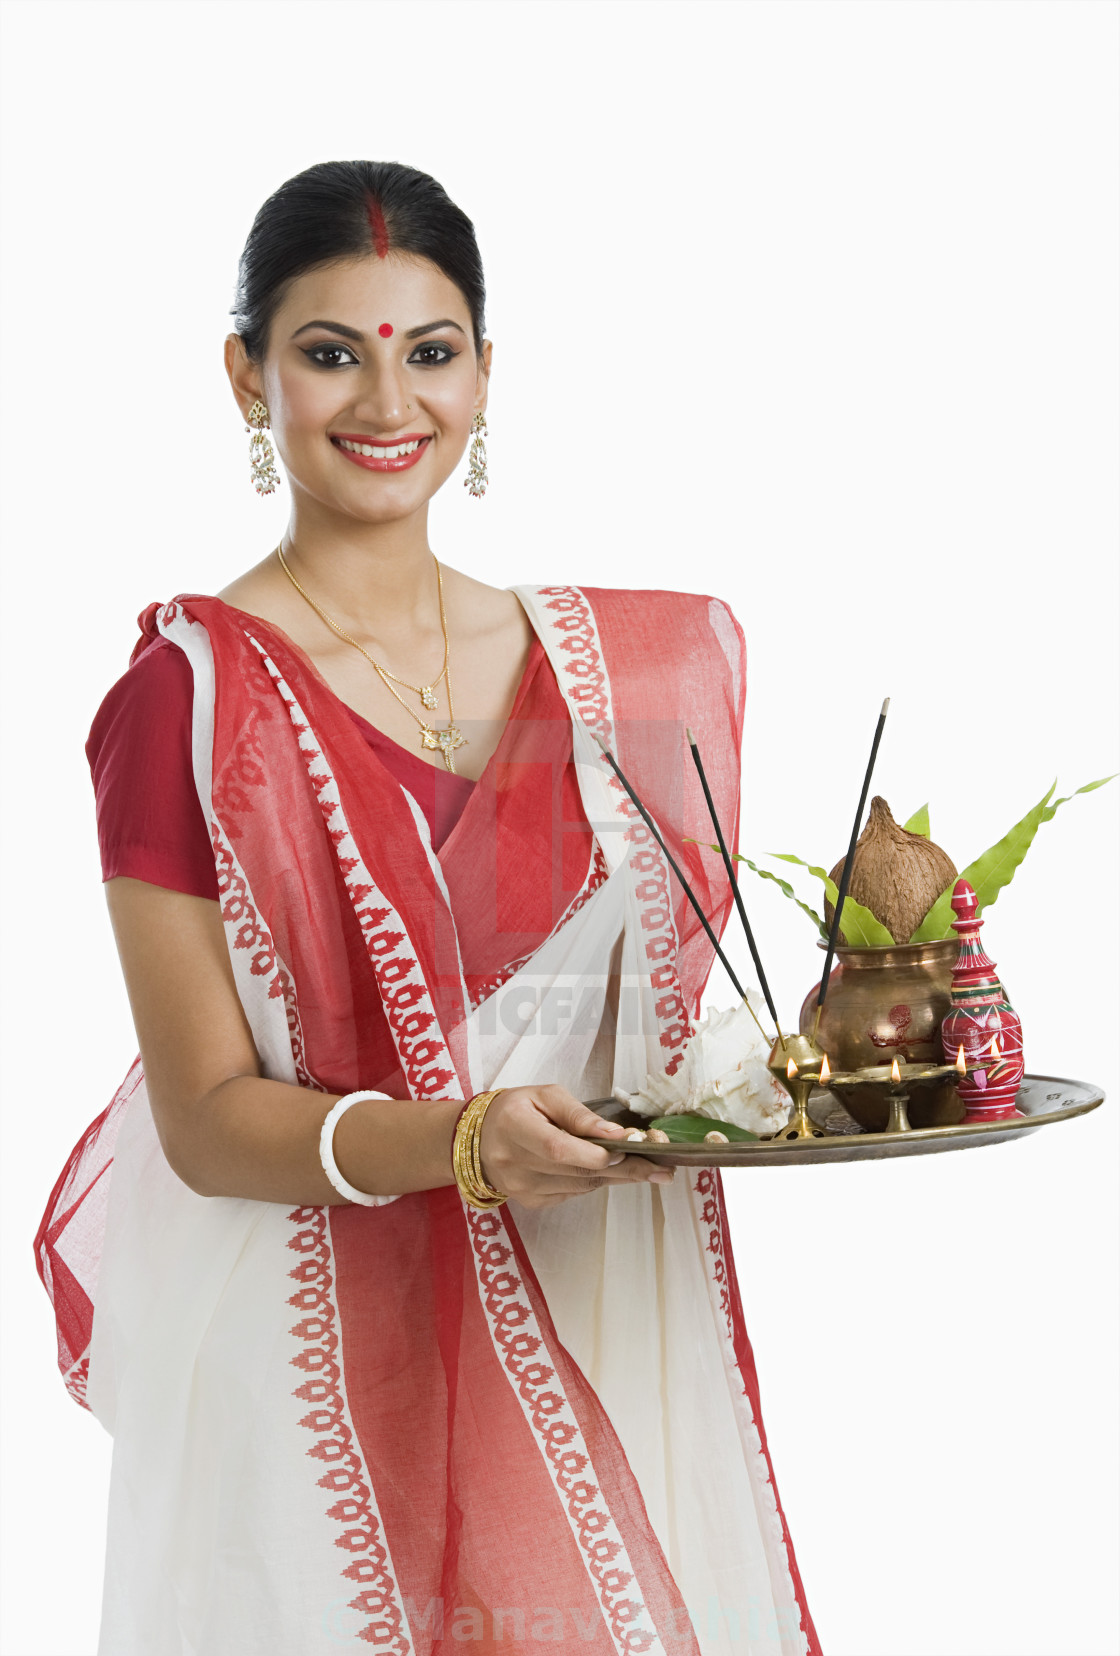 Bengali woman holding a puja thali - License, download or